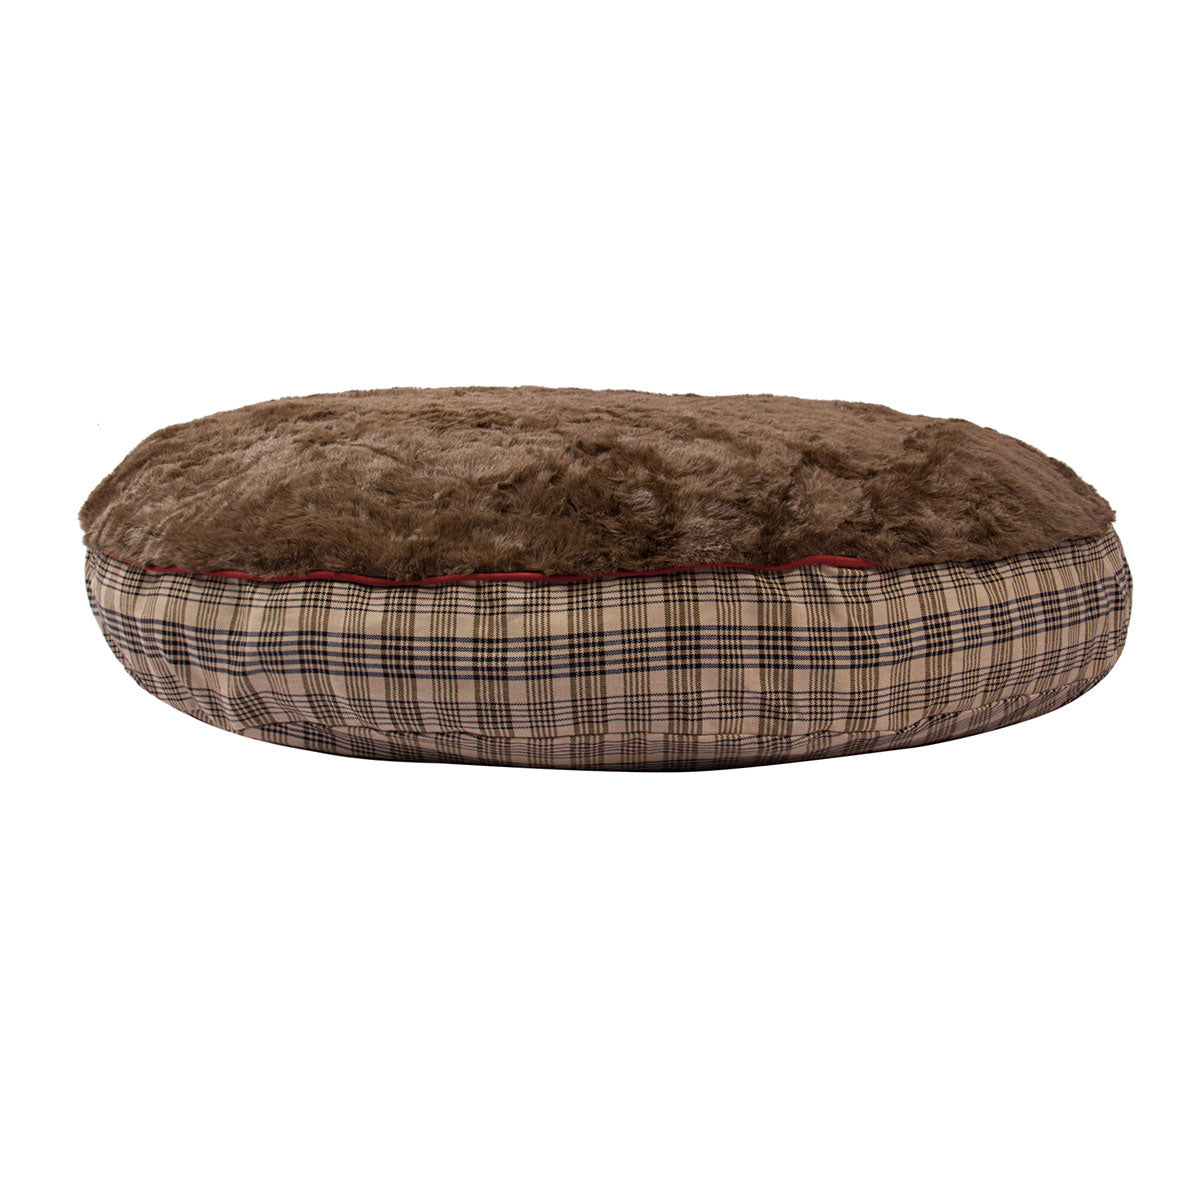 Baker Plaid Round Dog Bed_2228